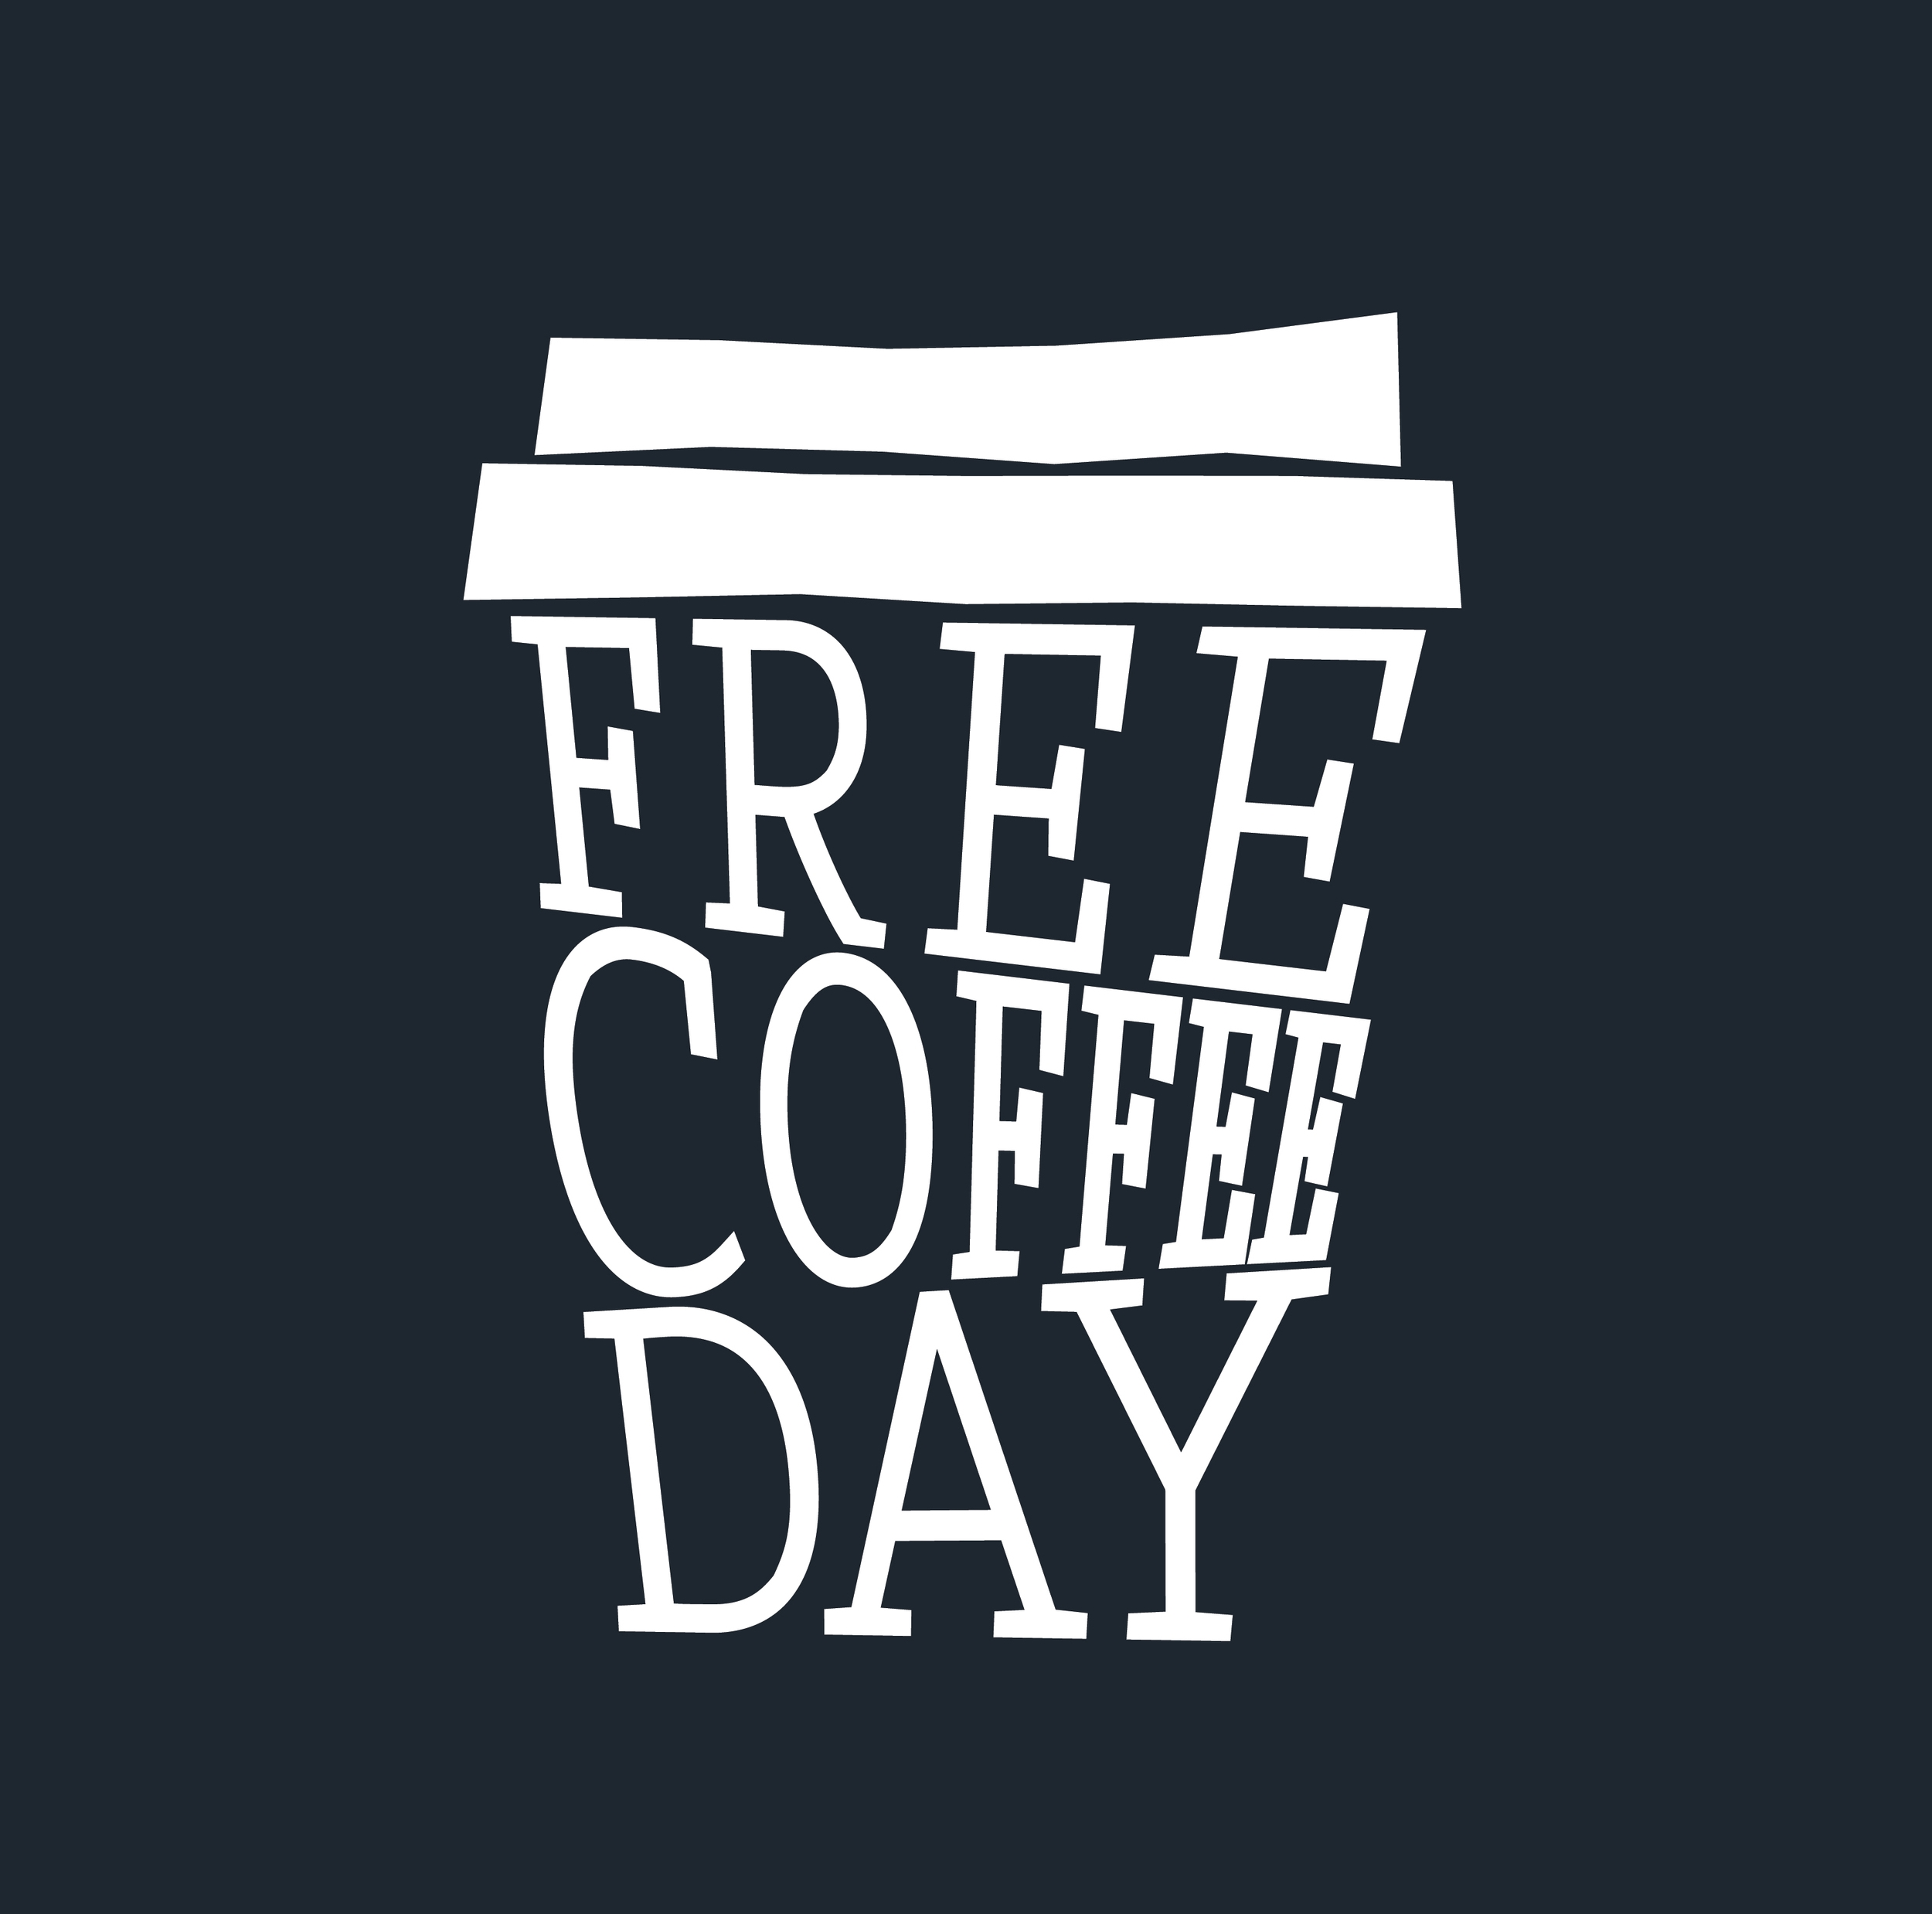 Dose Free Coffee Day